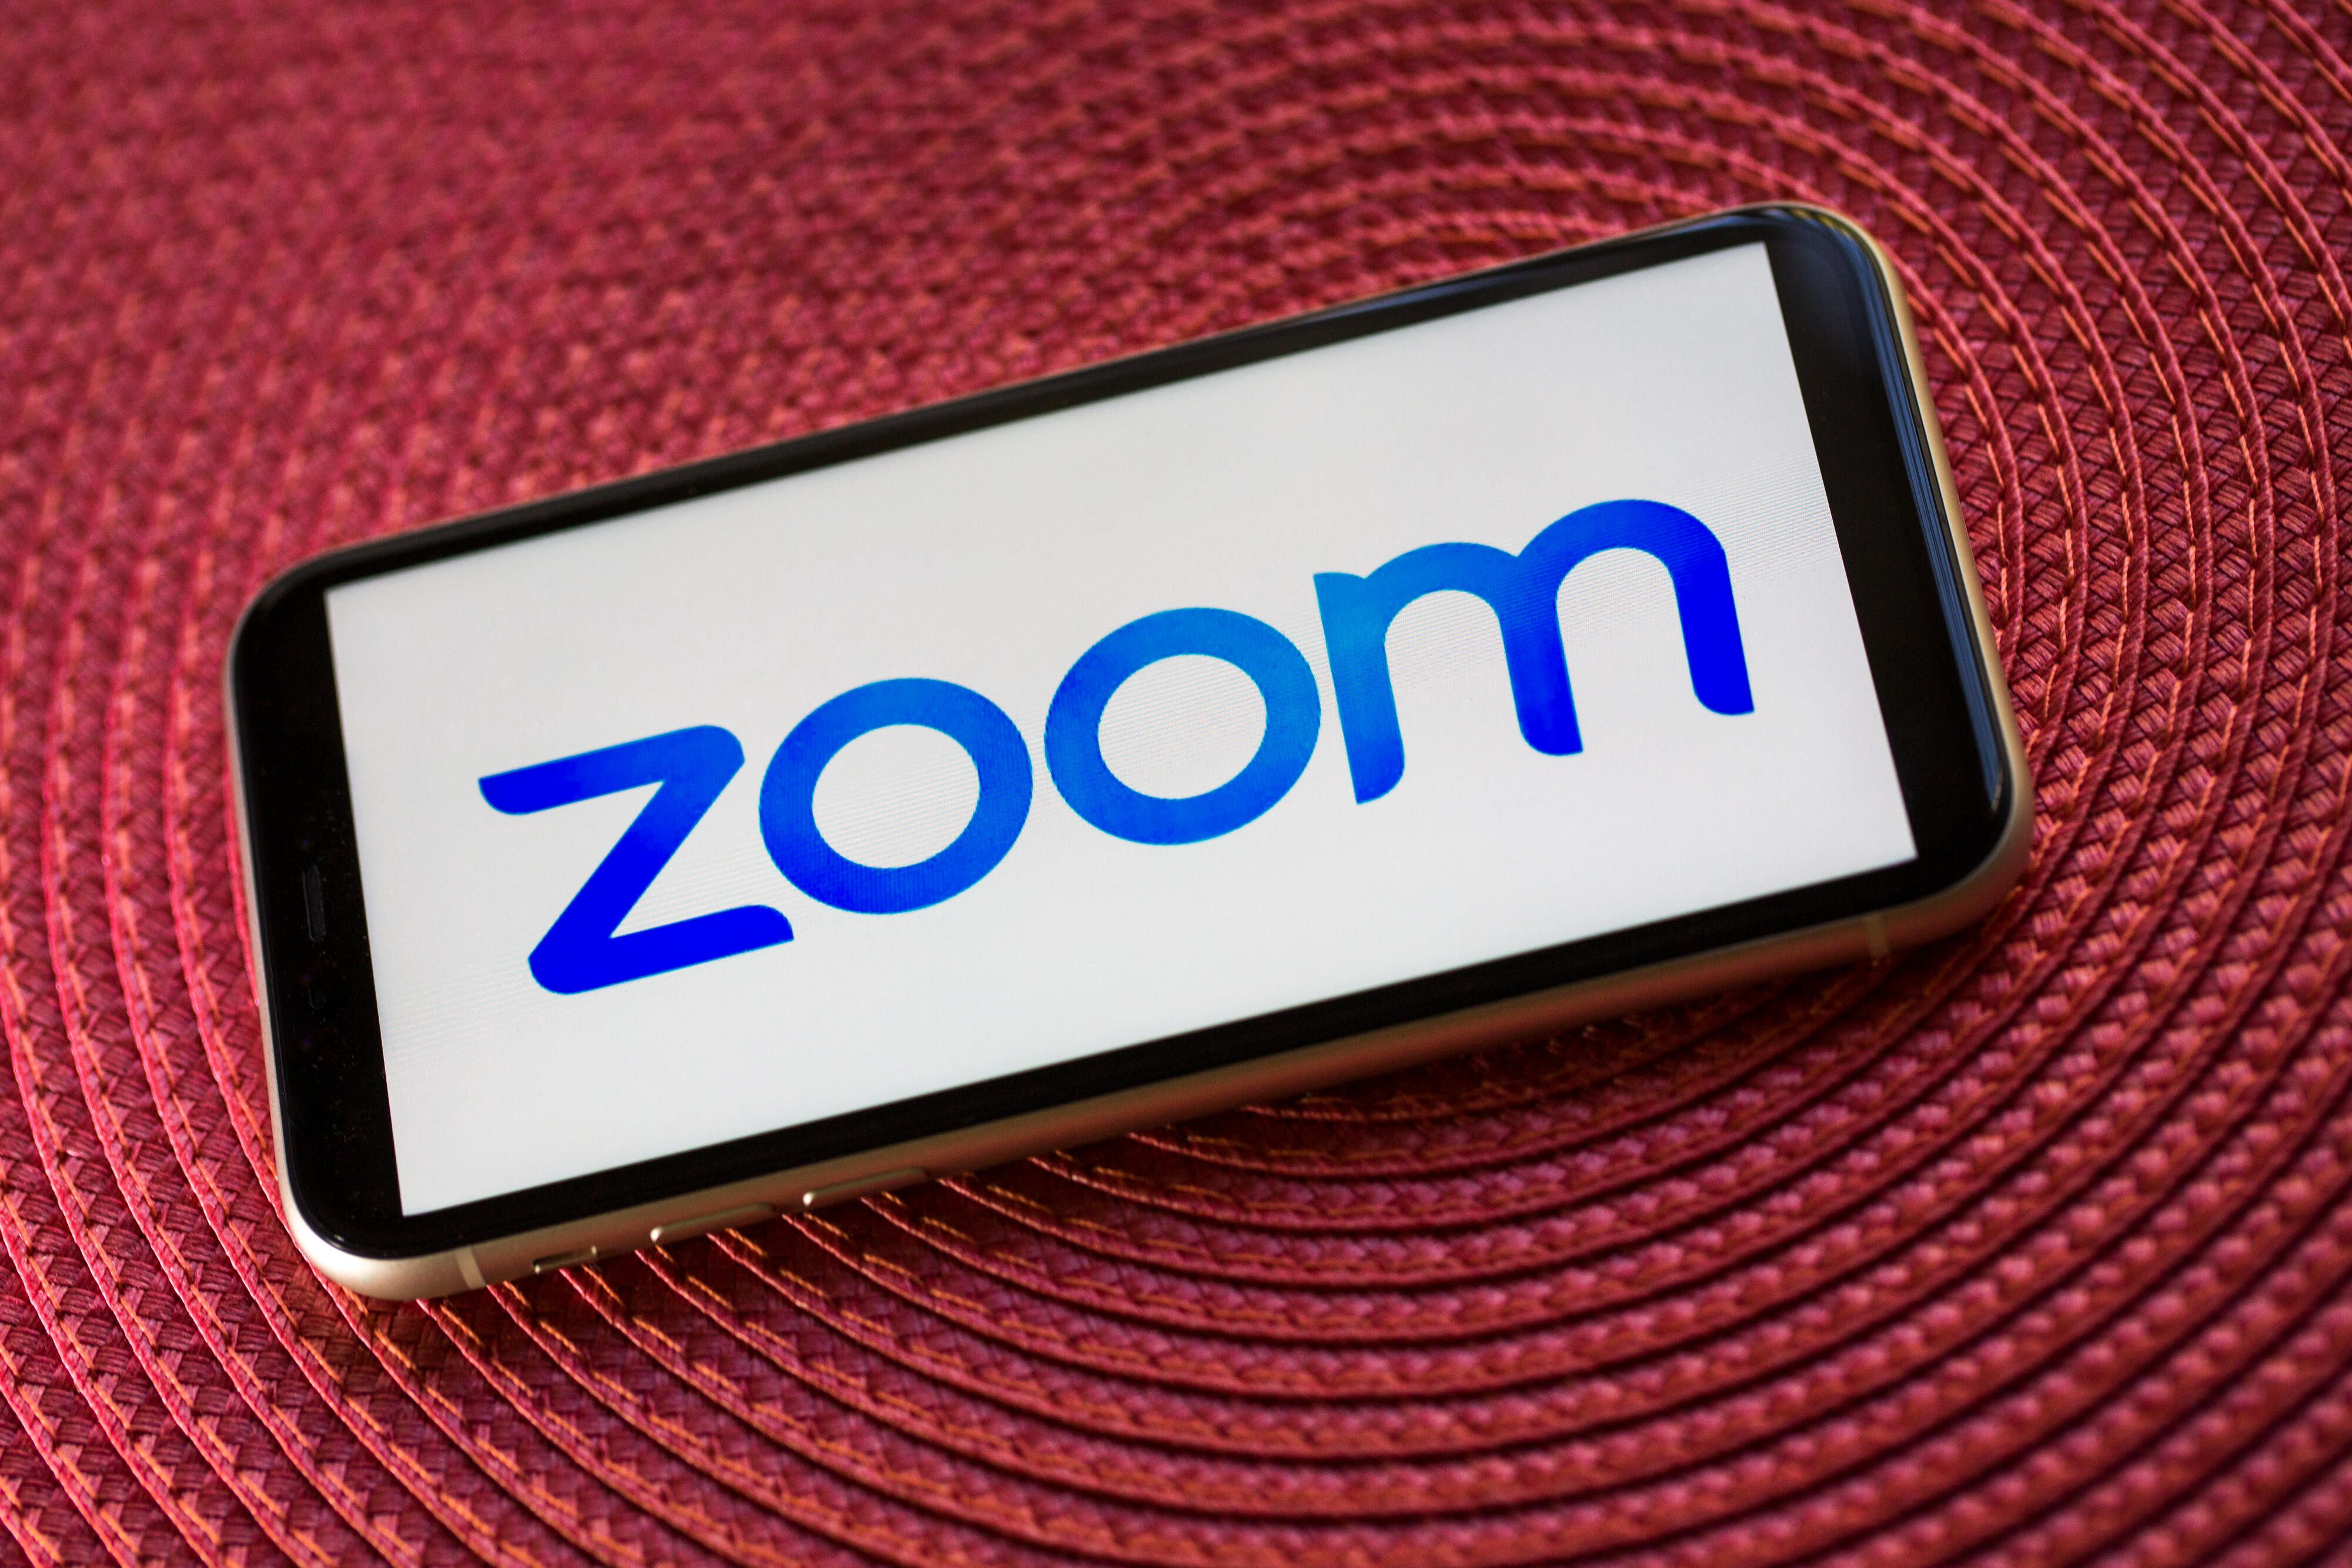 zoom-logo-apple-iphone-11-3436